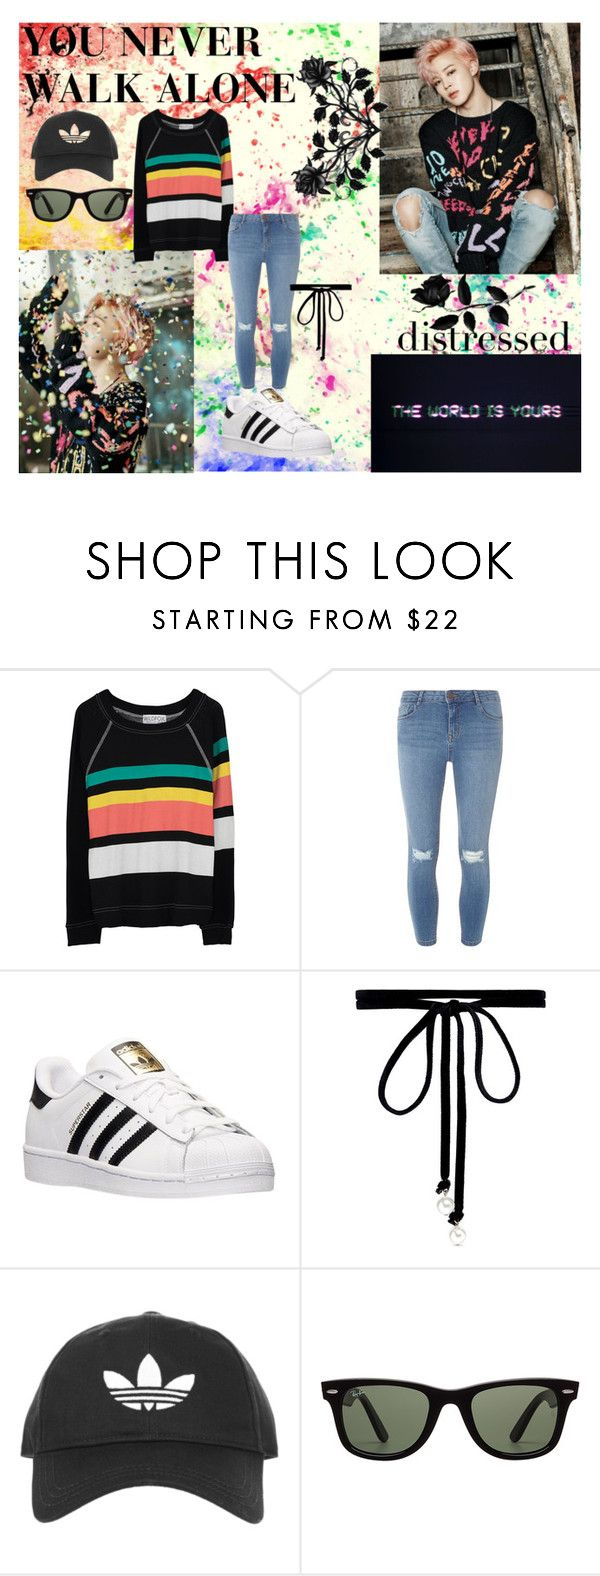 """""""Jimin: You Never Walk  Alone"""" by ks2823 ❤ liked on Polyvore featuring Wildfox, Dorothy Perkins, adidas, Joomi Lim, Topshop and Ray-Ban"""